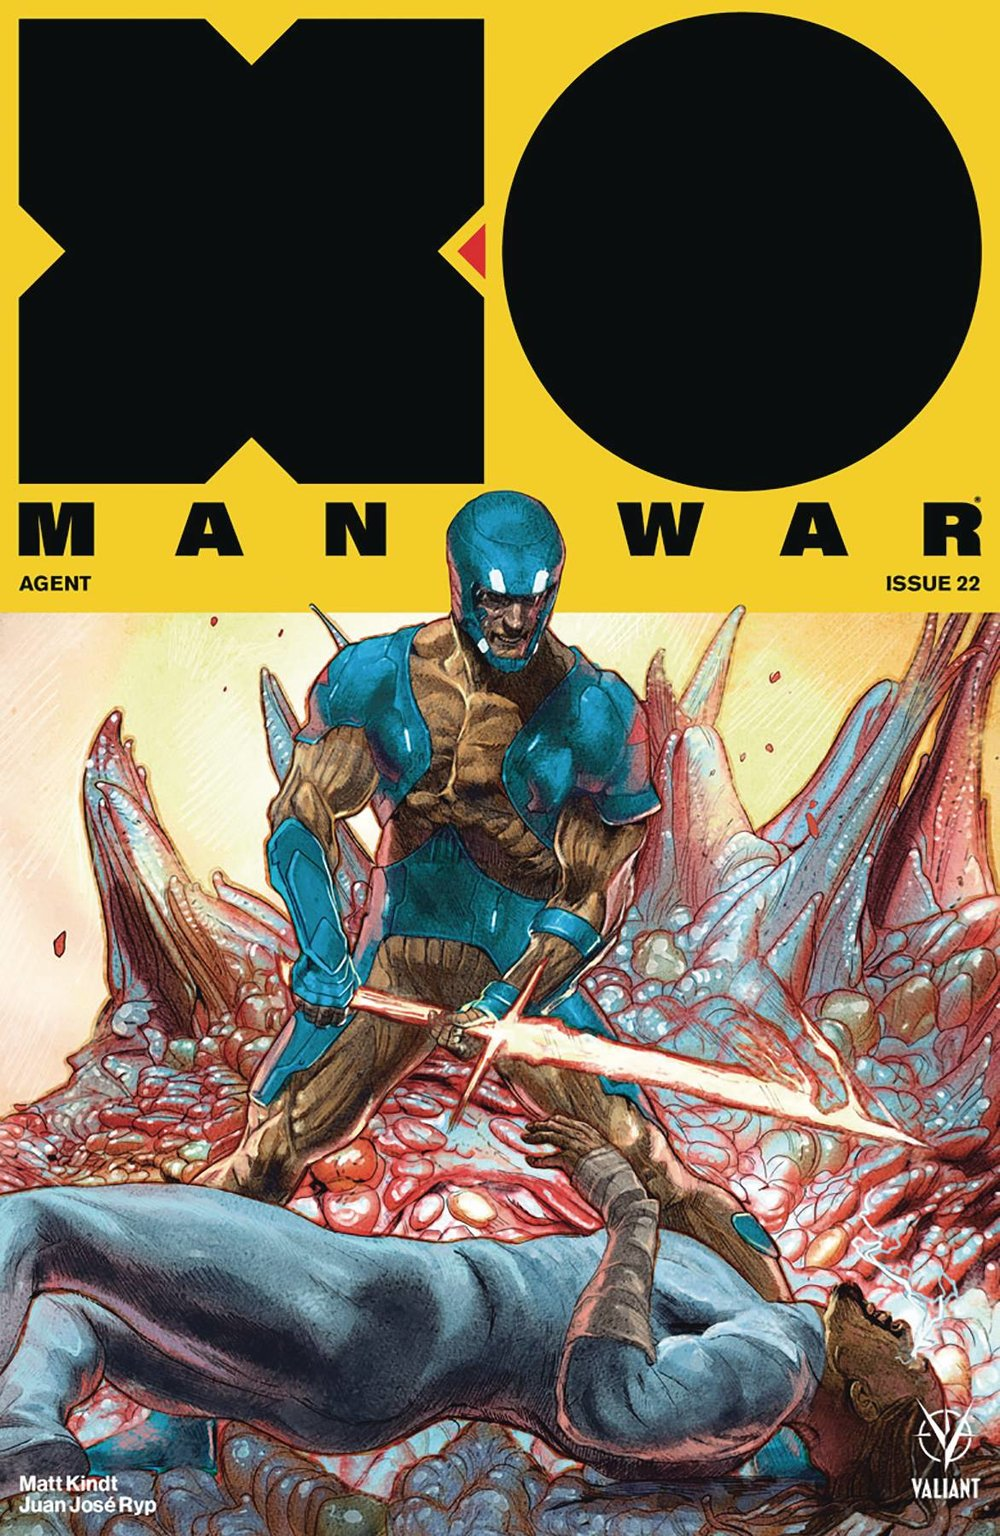 X-O MANOWAR (2017) 22 CVR D 20 COPY INCV INTERLOCKING GUEDES.jpg